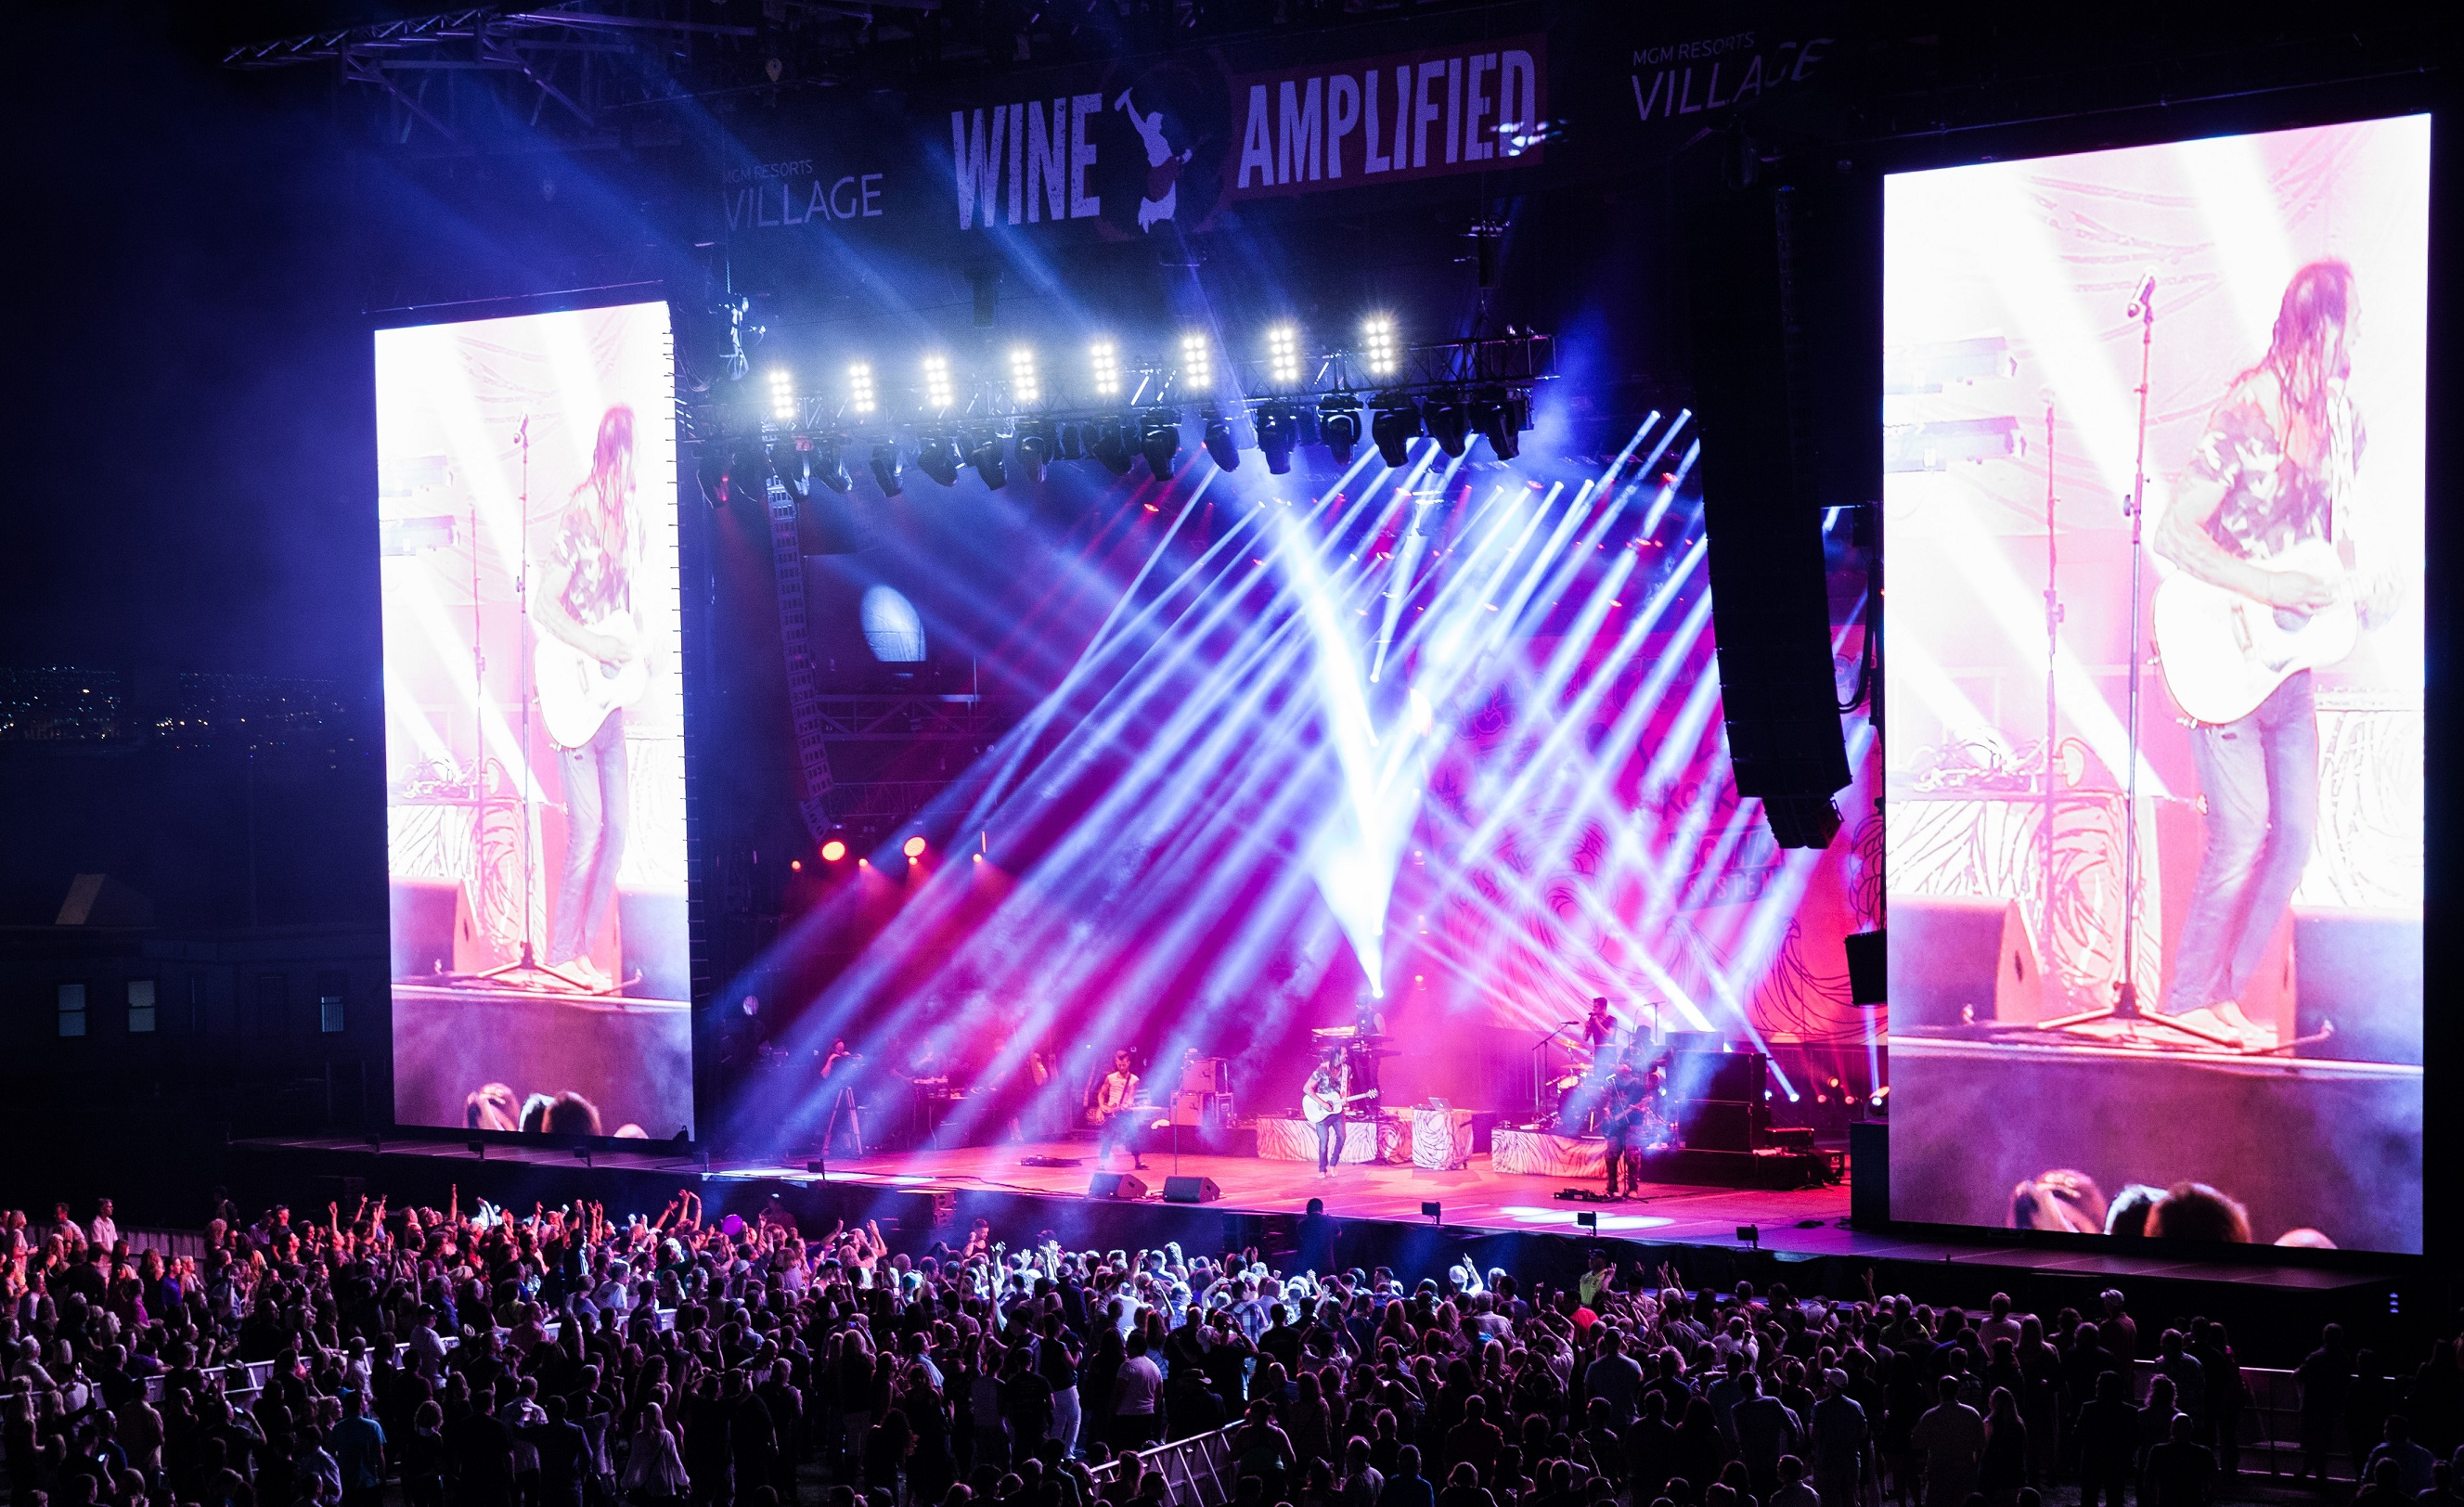 Wine Amplified 2014